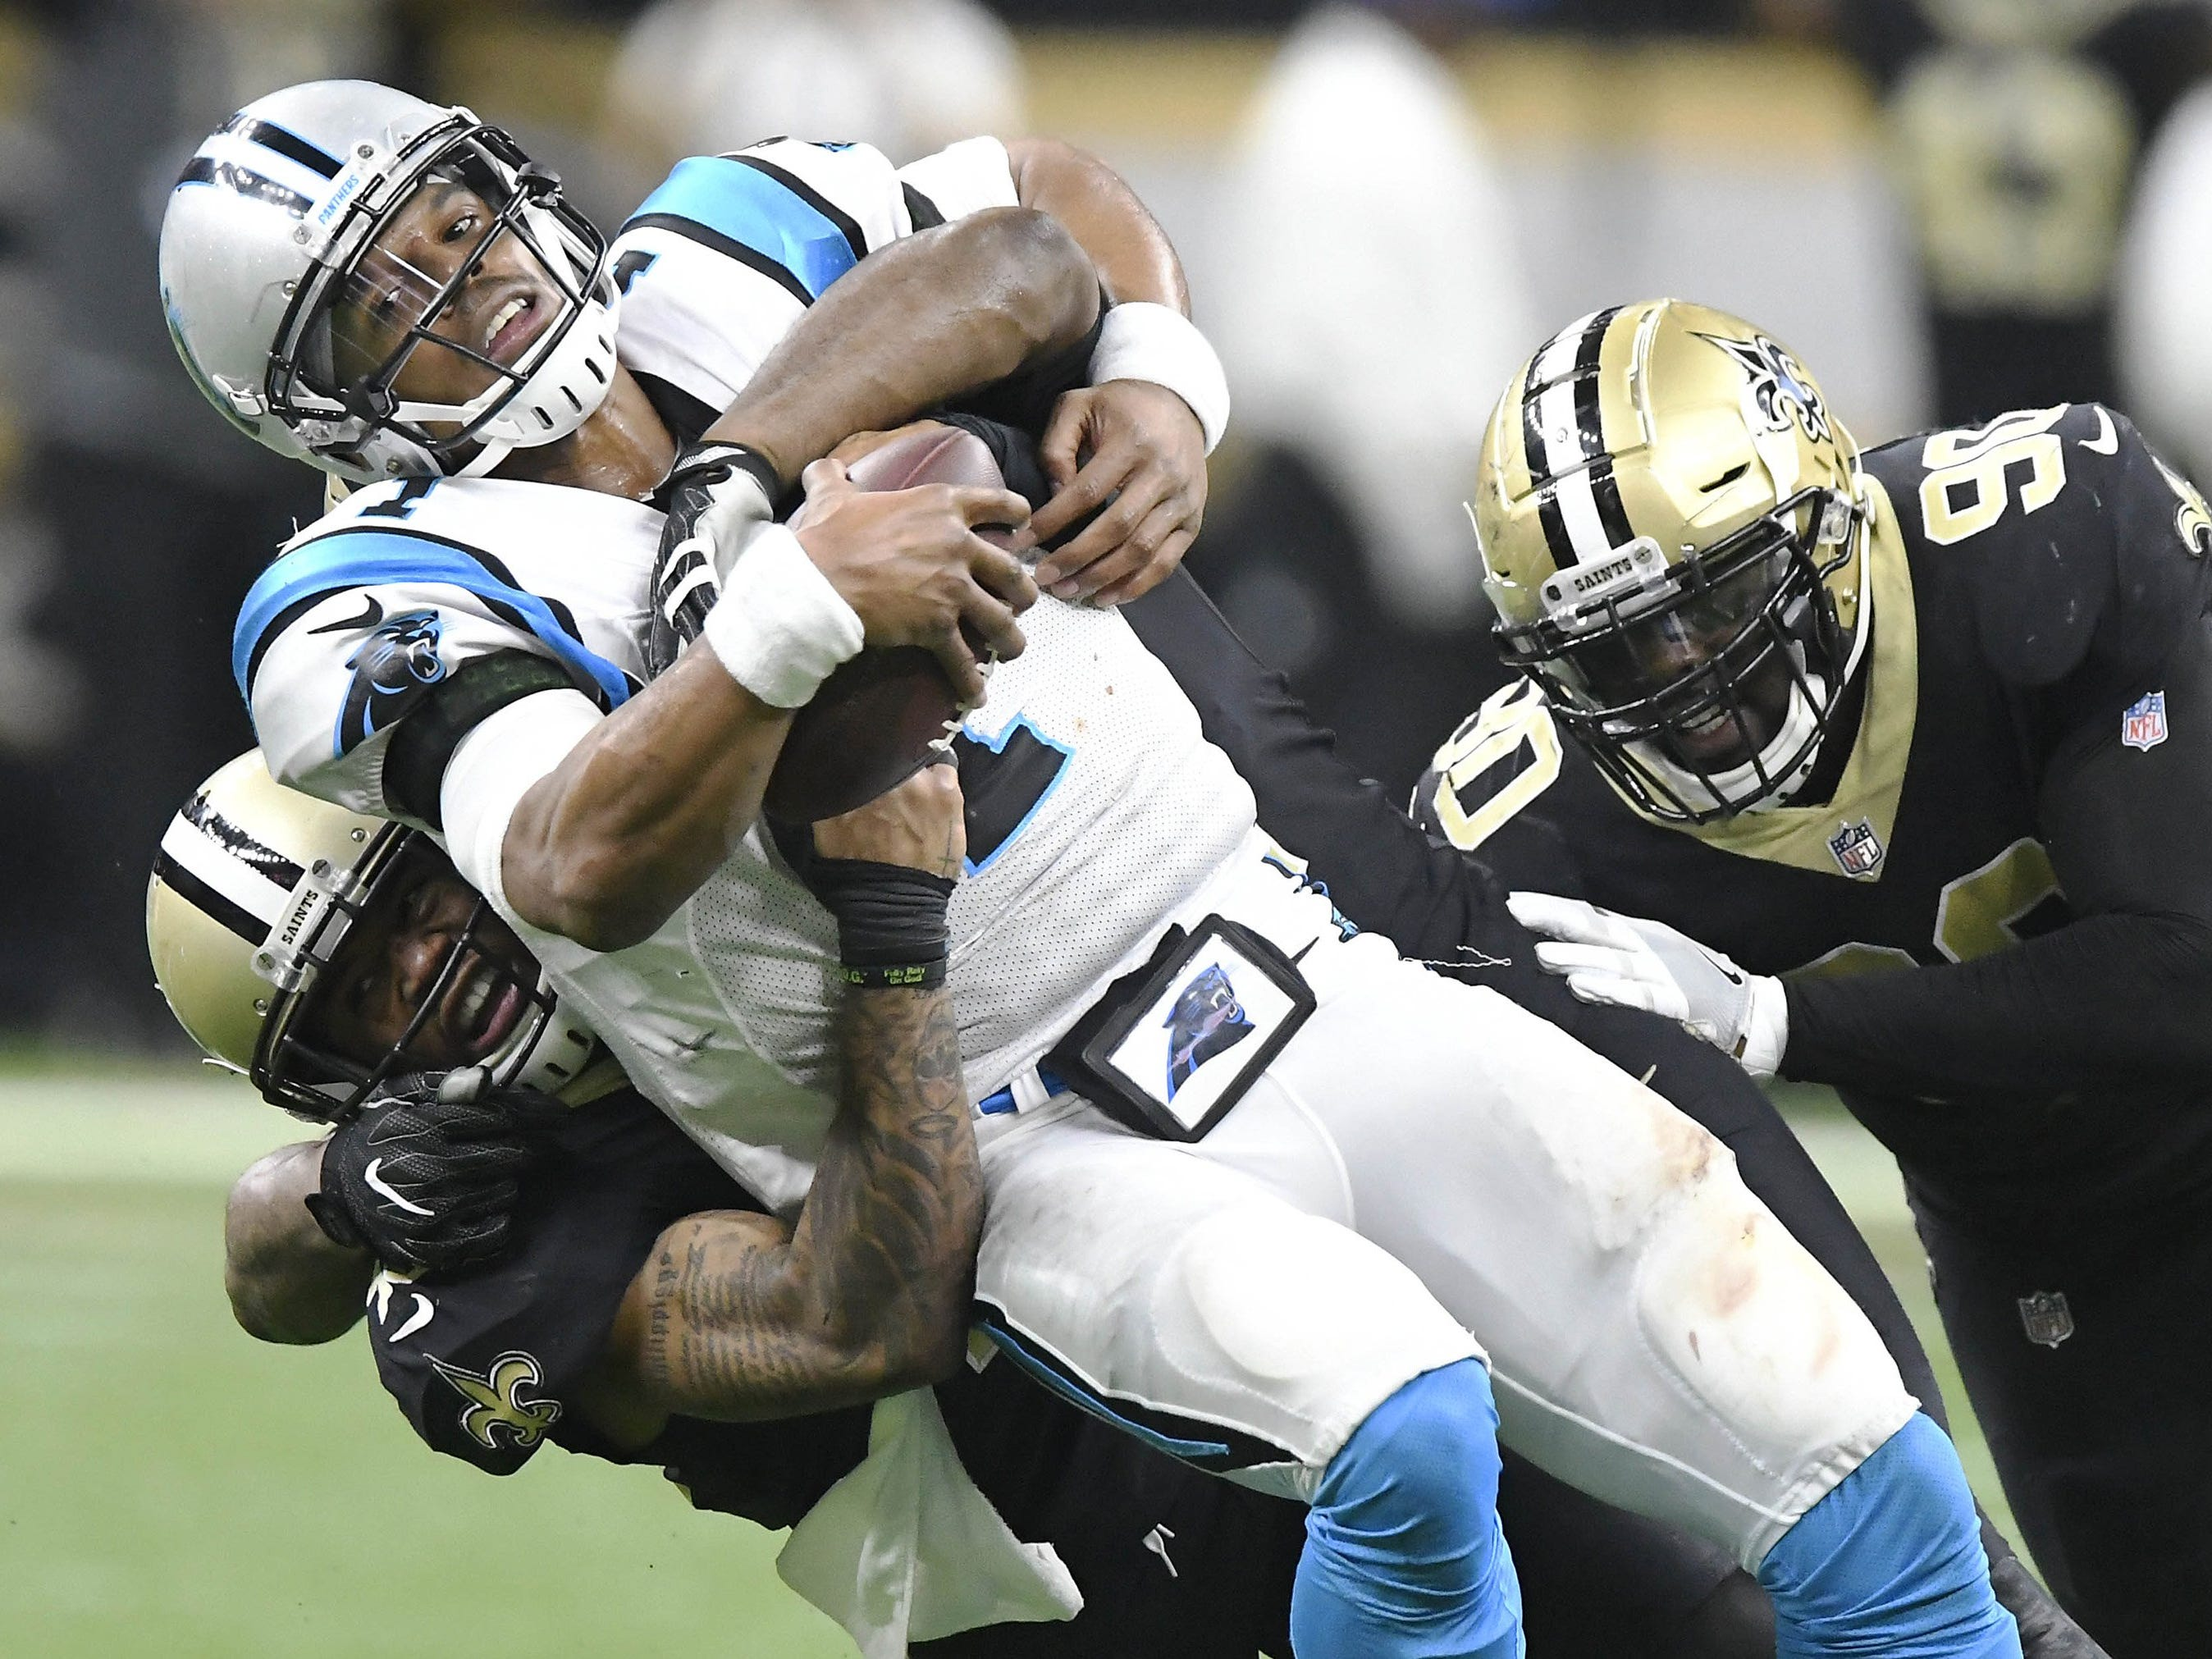 7. Carolina Panthers at New Orleans Saints, Week 17, 1 p.m. Dec. 30, Fox: This game could have serious playoff implications, from deciding the NFC South to deciding wild-card spots. Both NFC wild-card teams came out of the division last season.